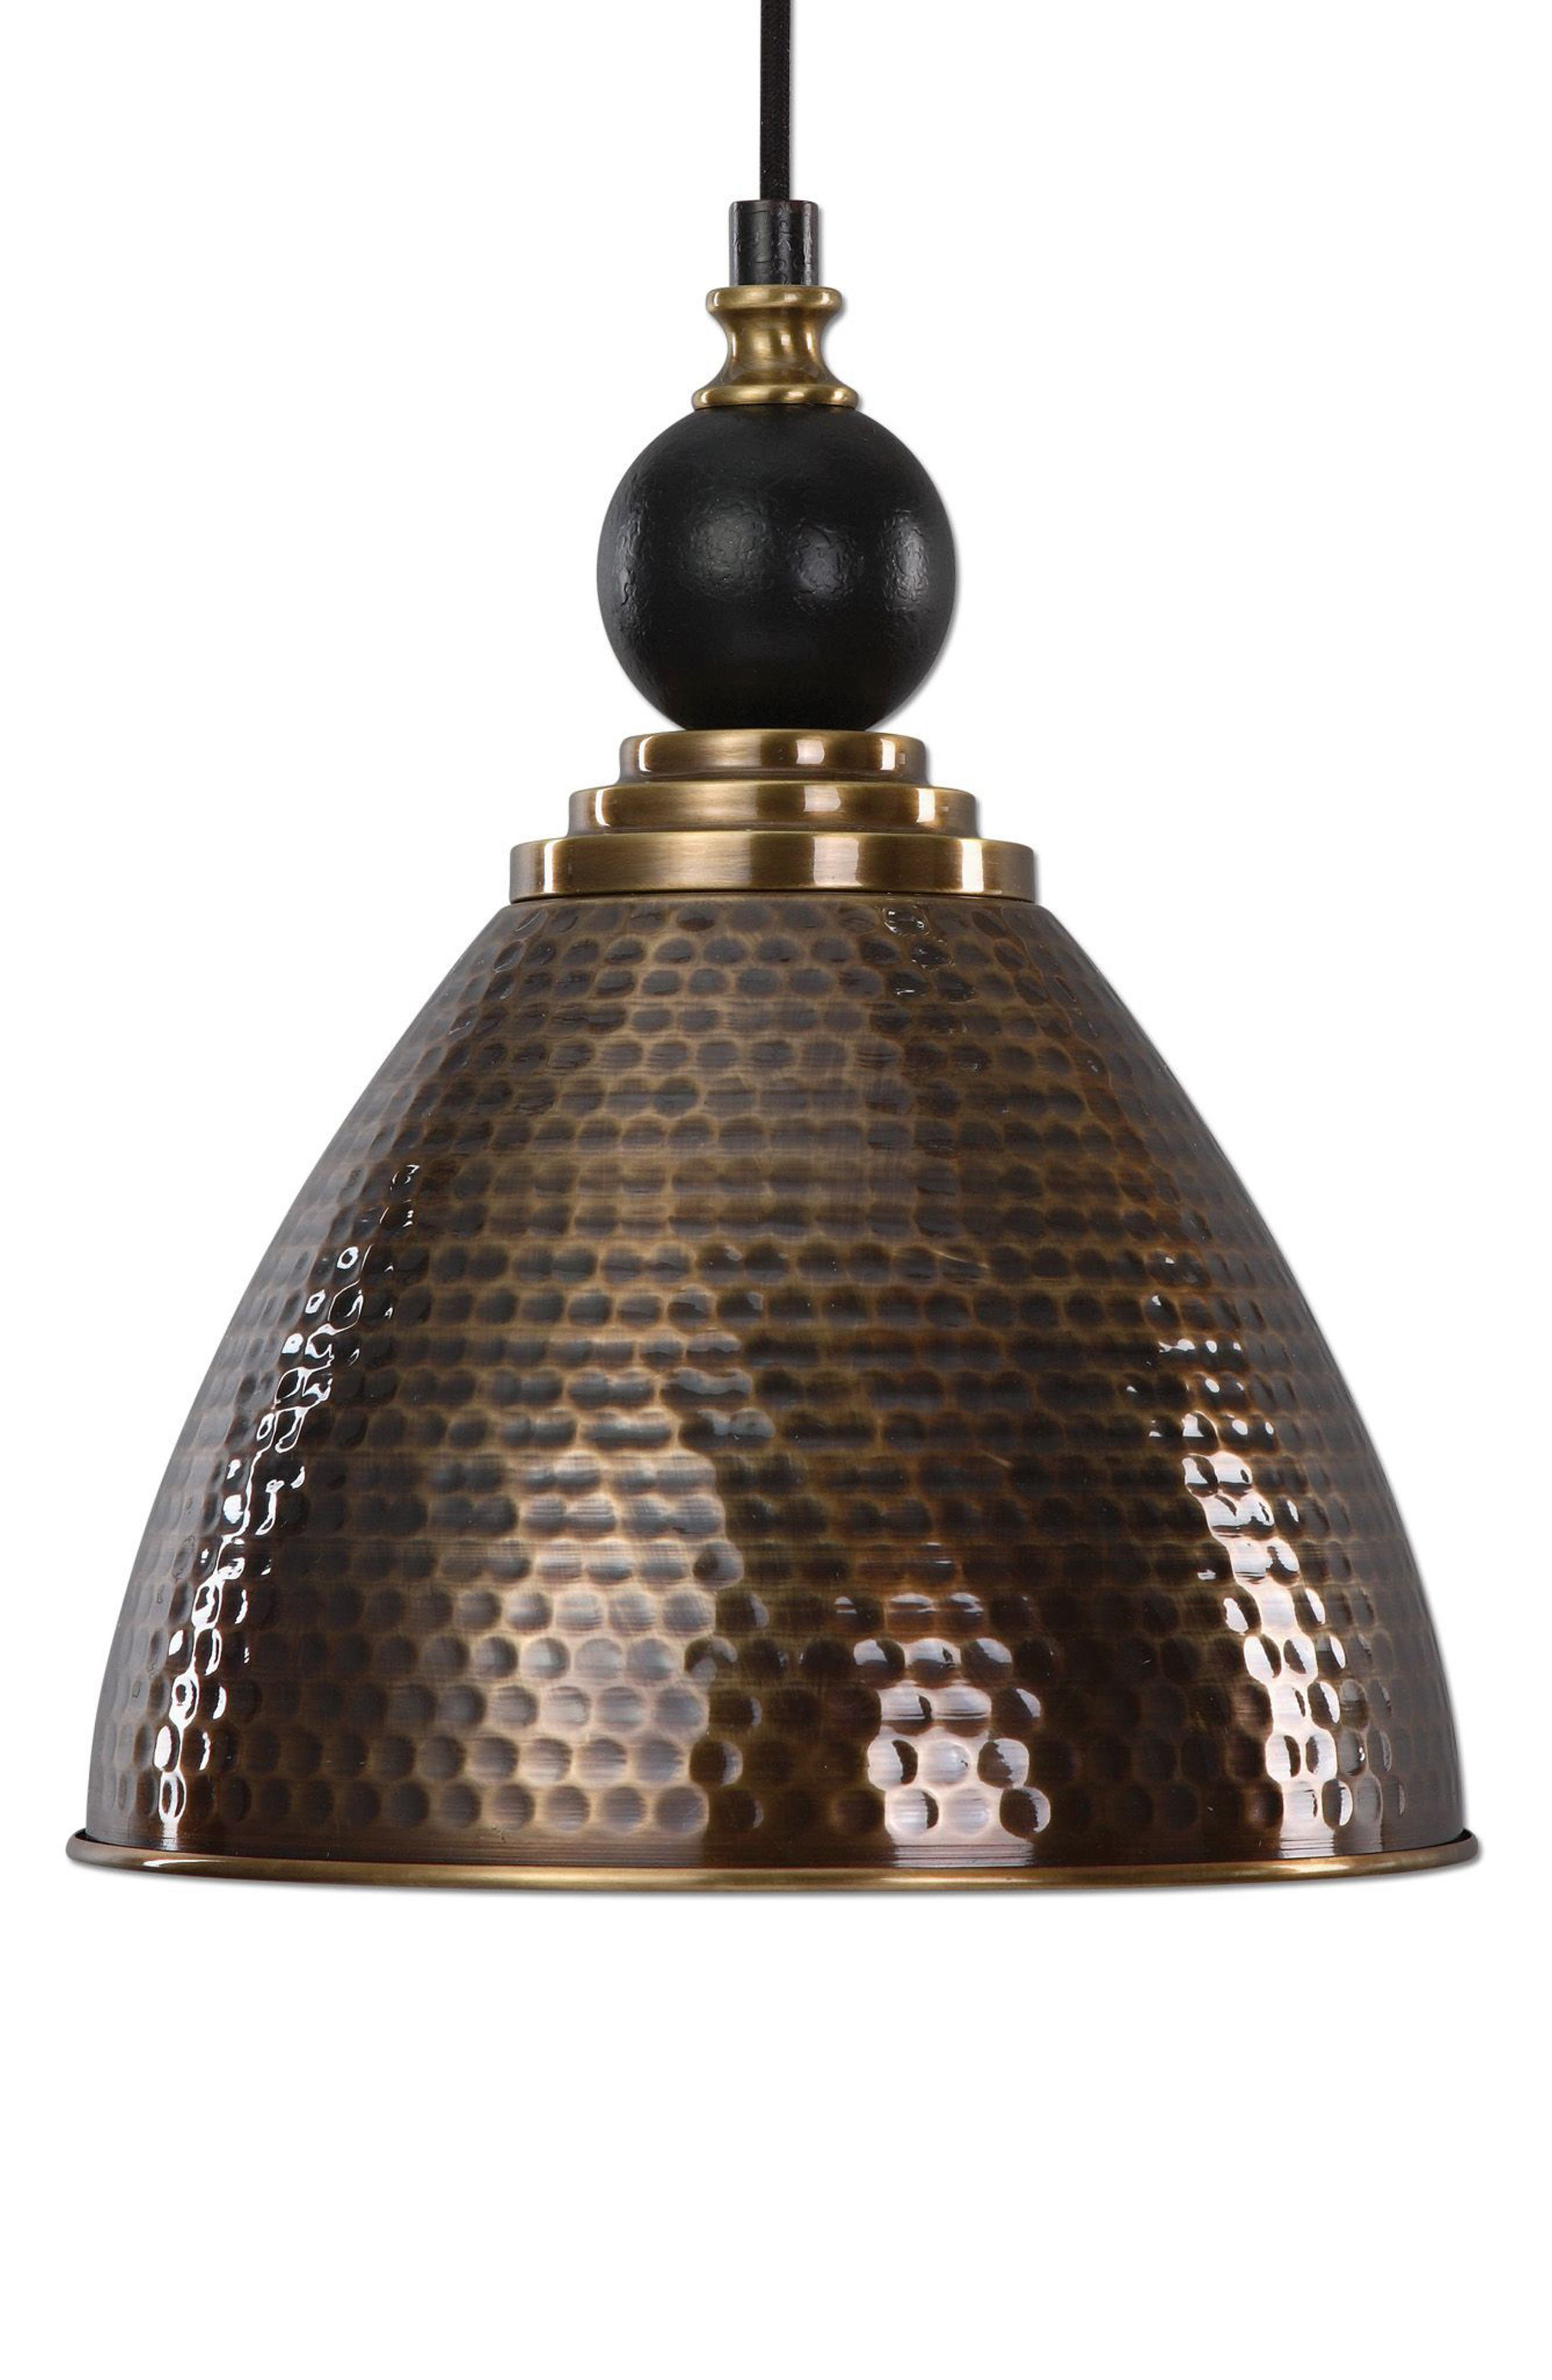 Alternate Image 1 Selected - Uttermost Adastra Pendant Light Fixture